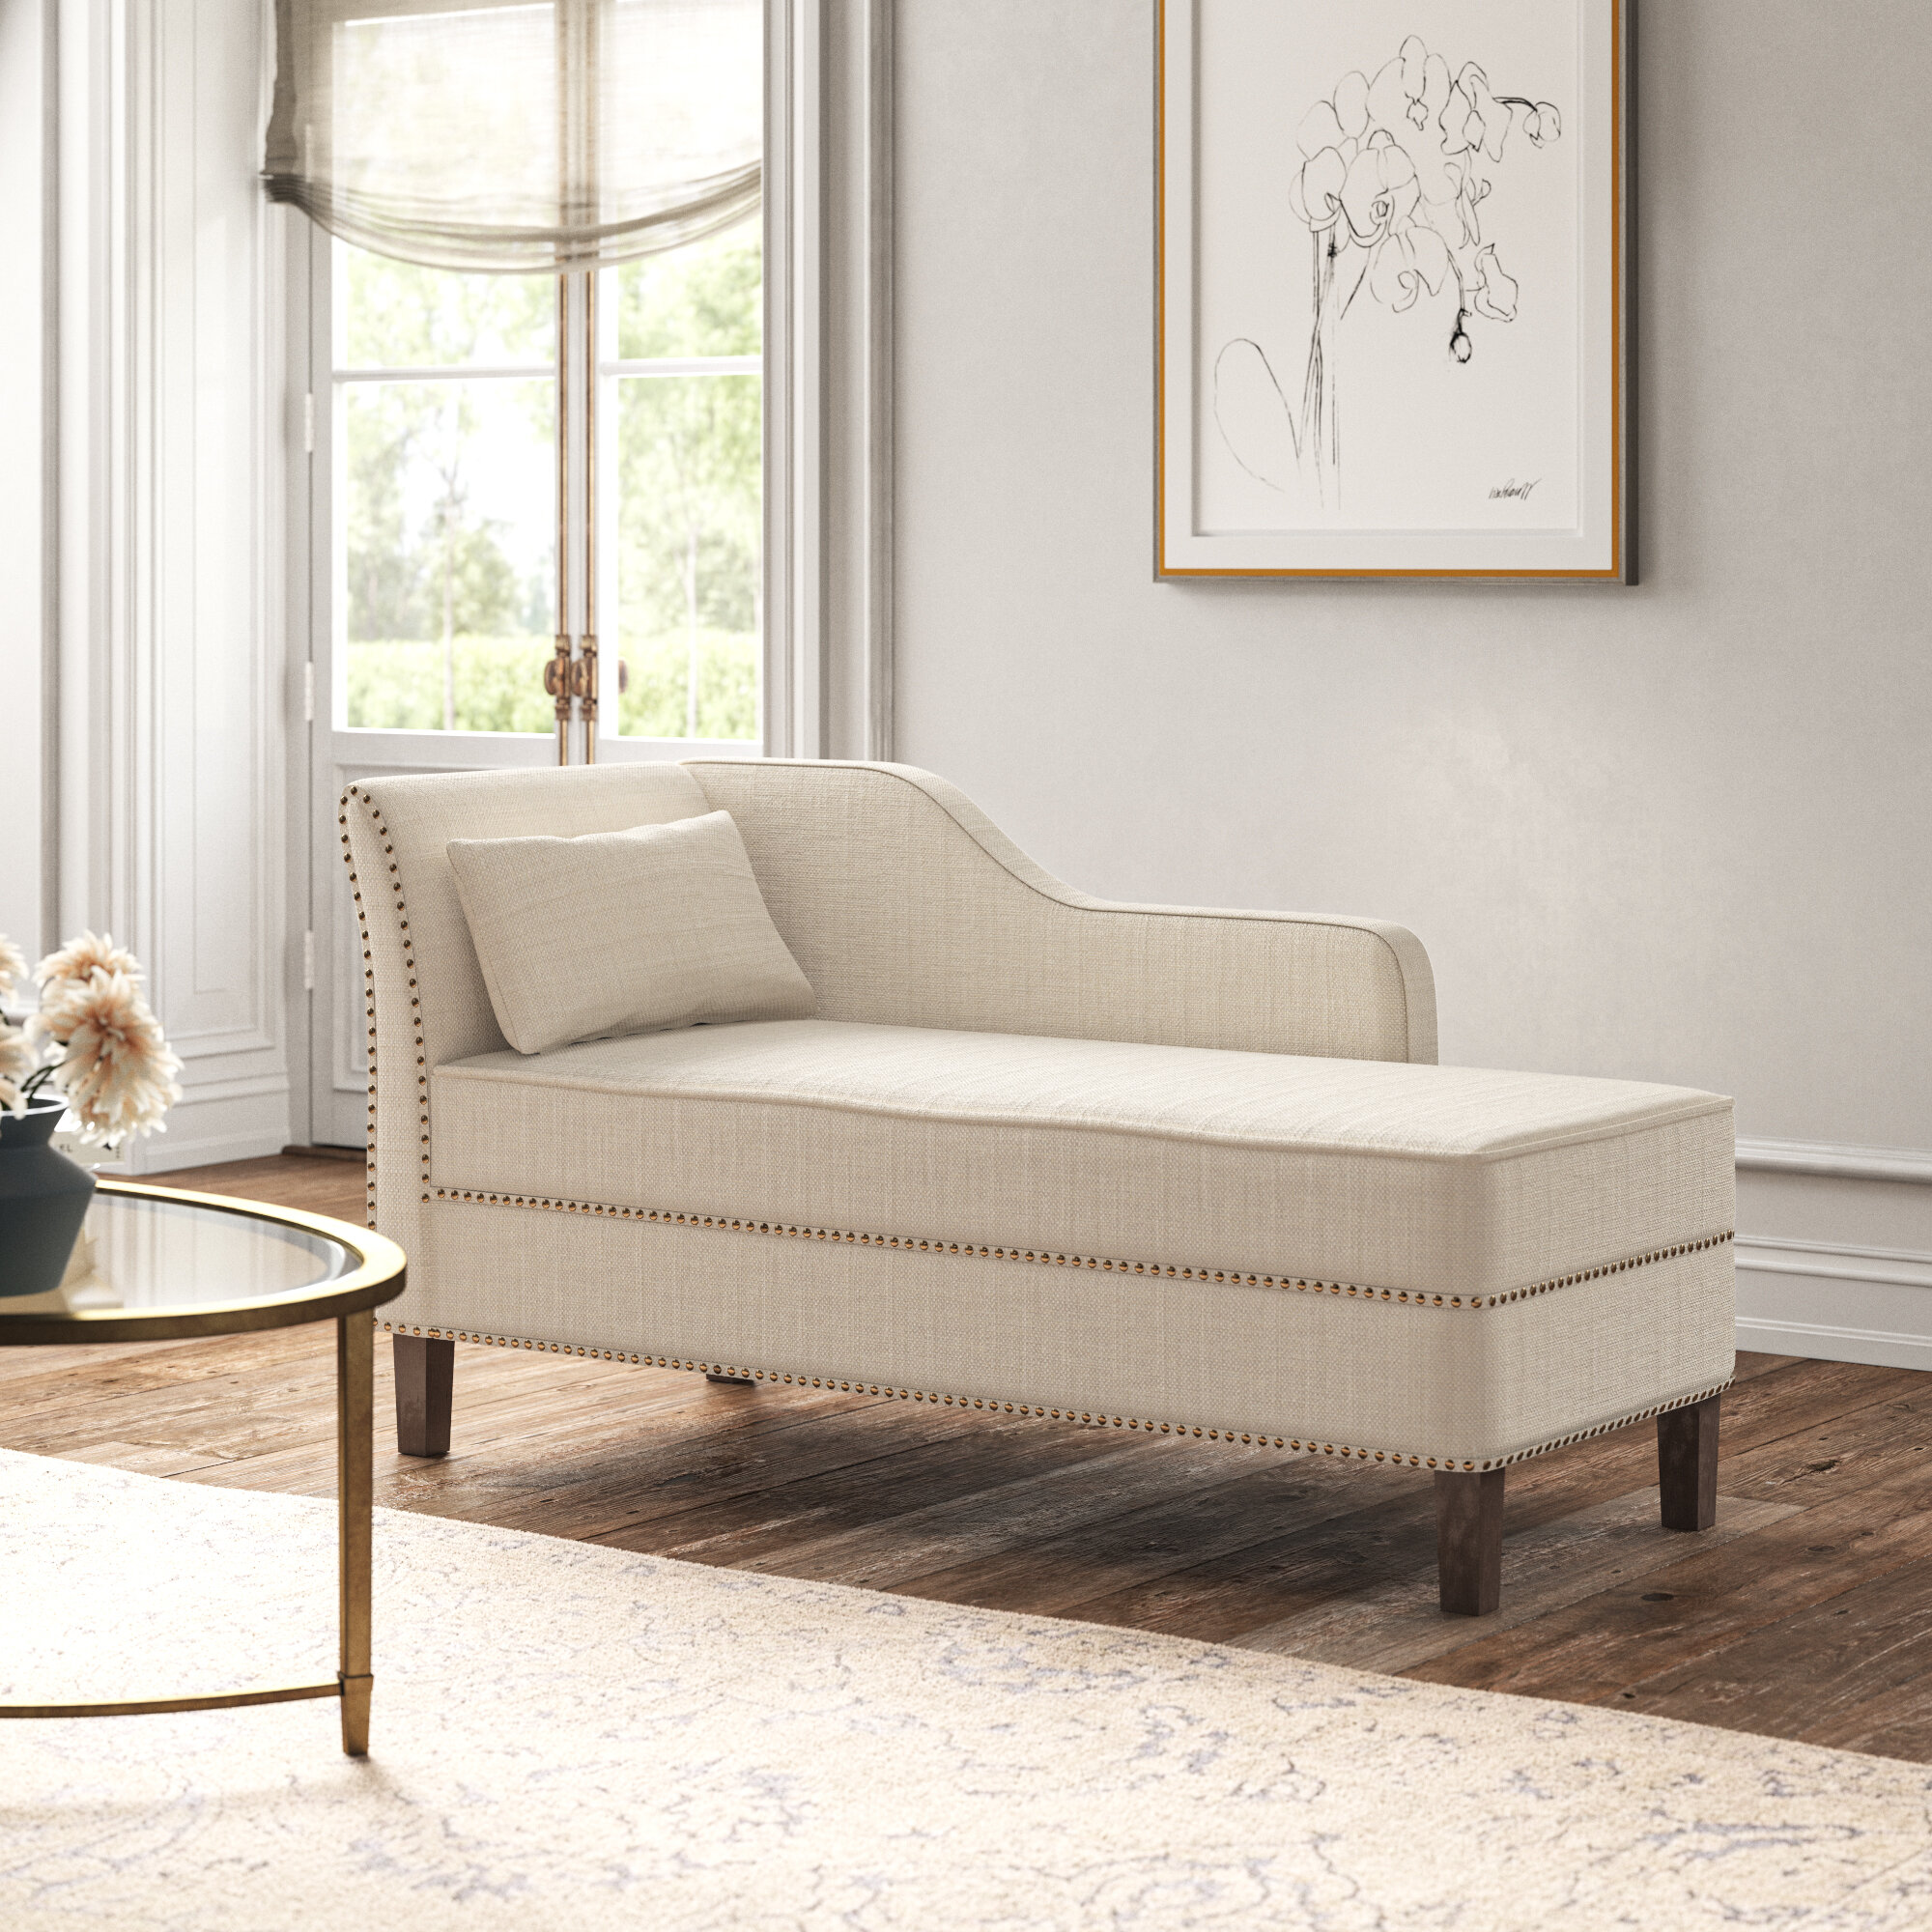 verona one left arm chaise recessed arms chaise lounge with storage